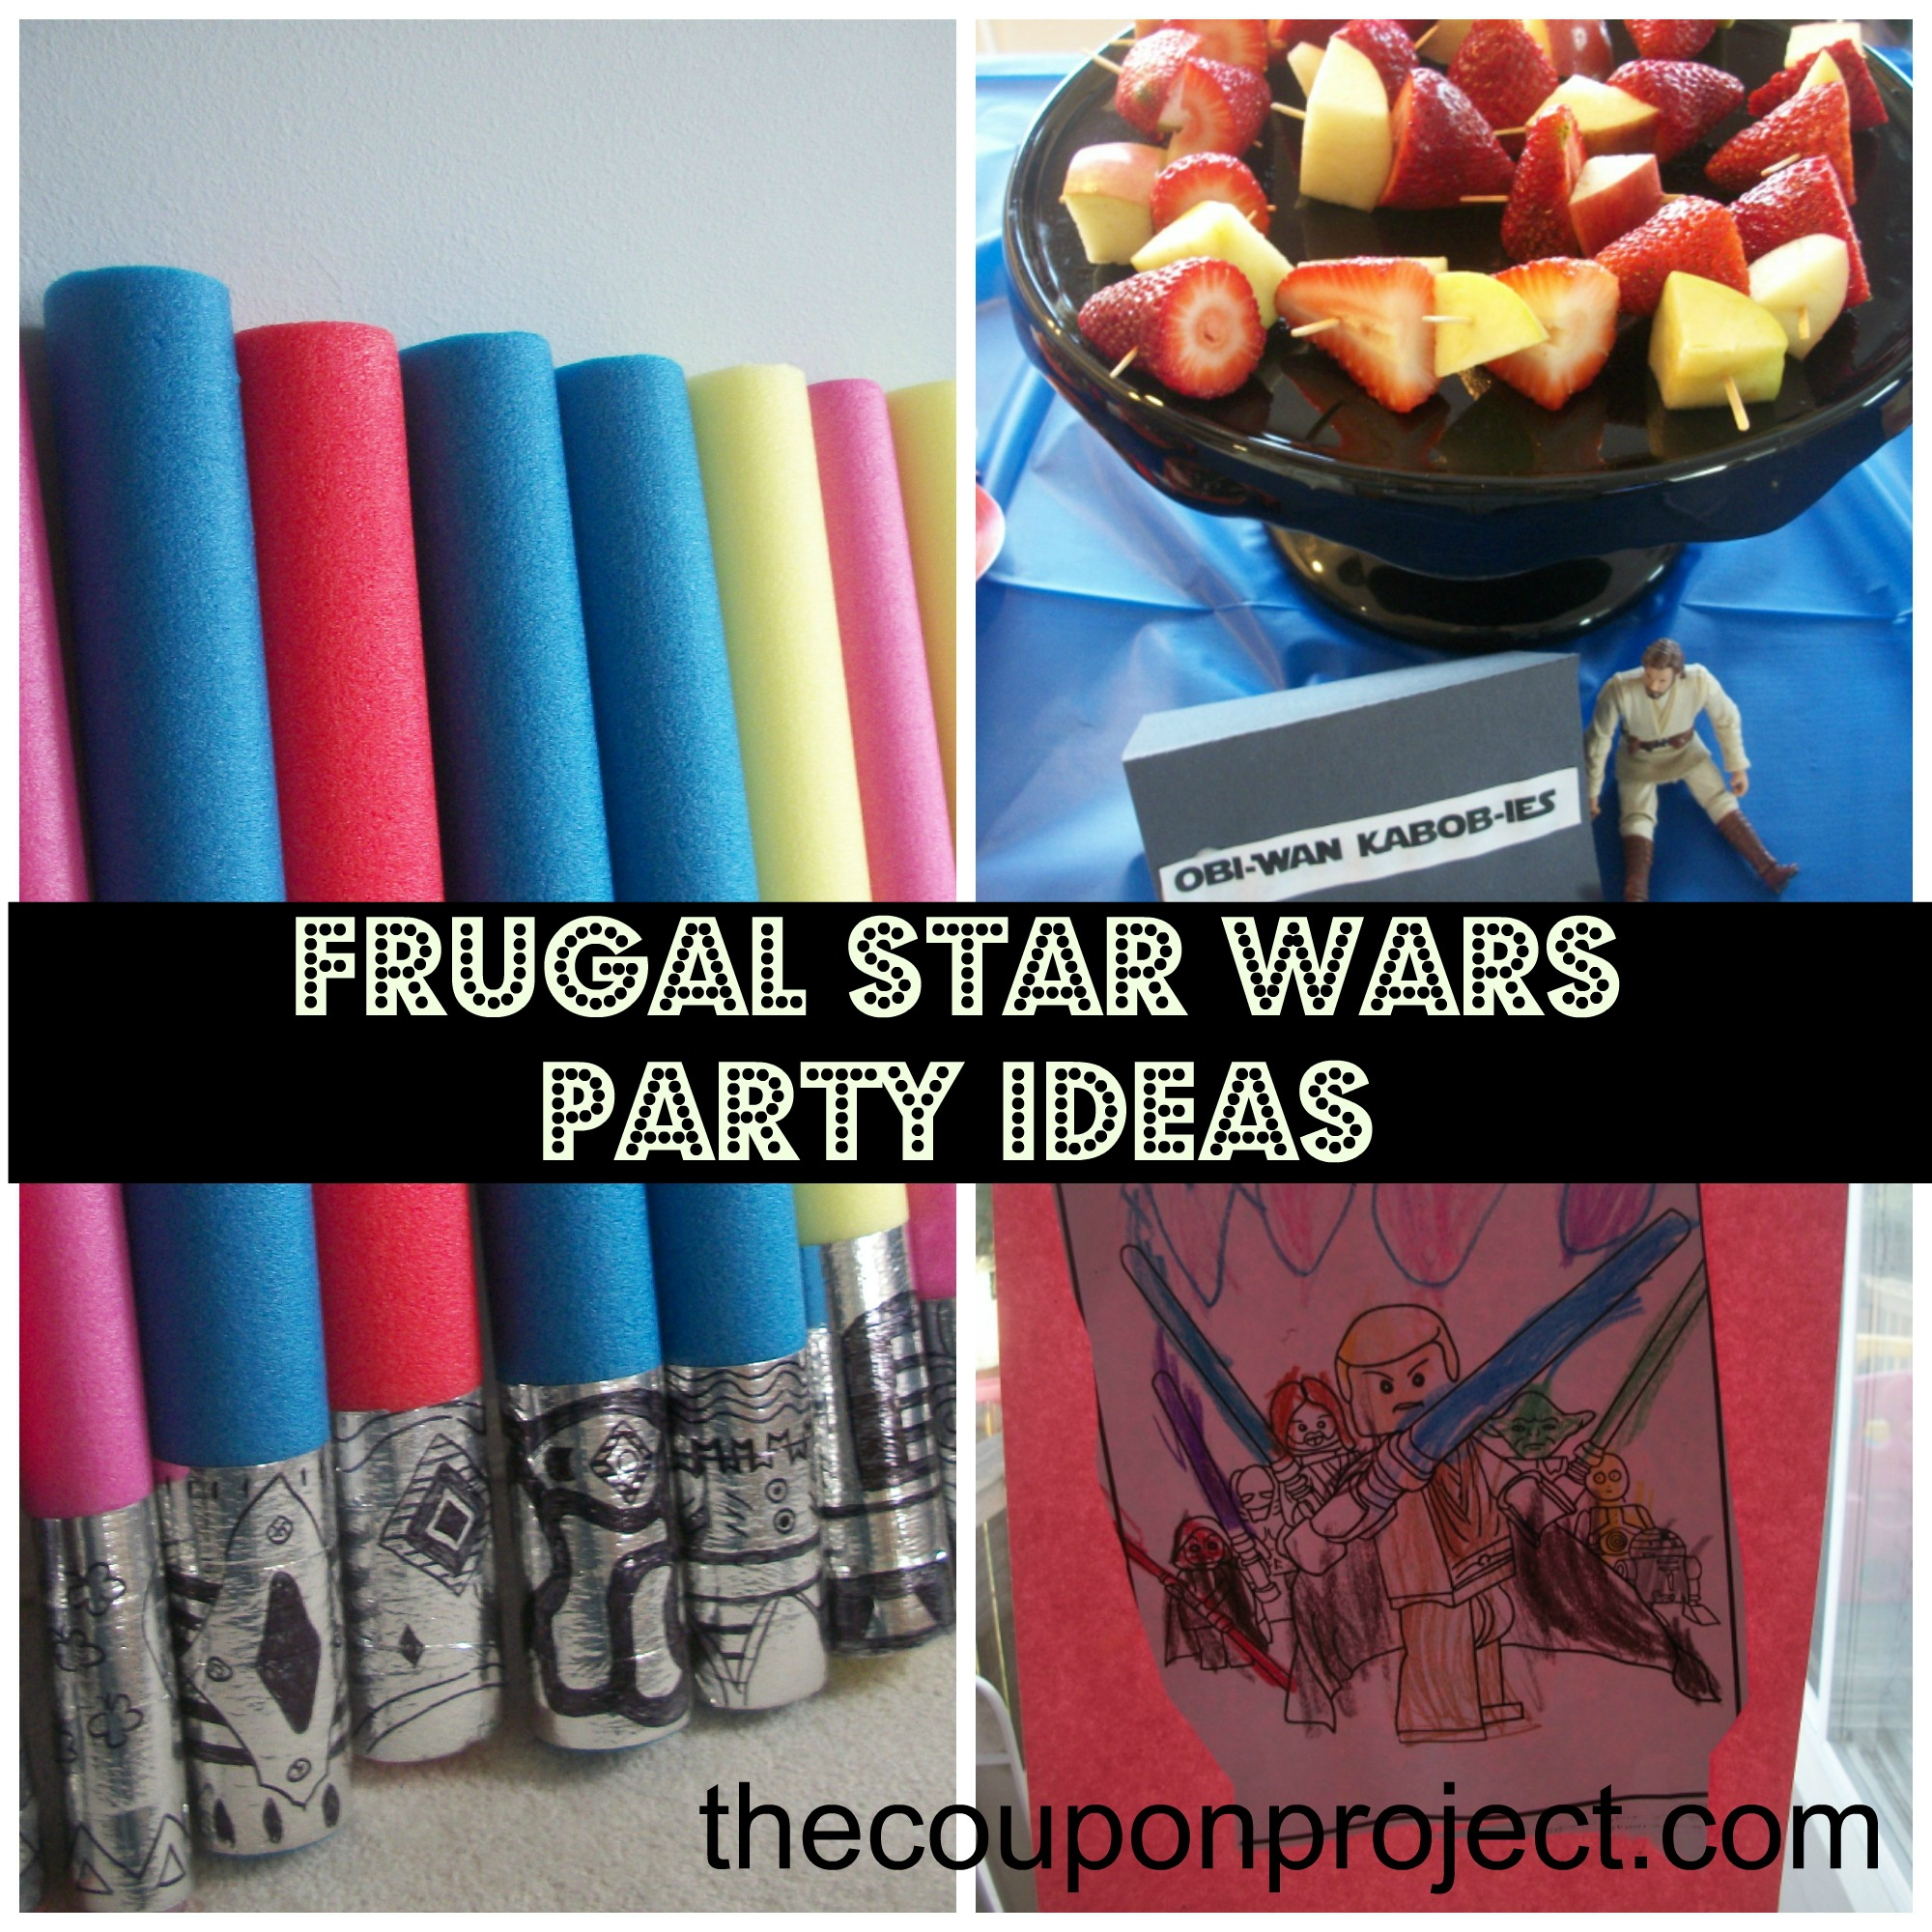 Star Wars Decorations Ideas Frugal Star Wars Party Ideas